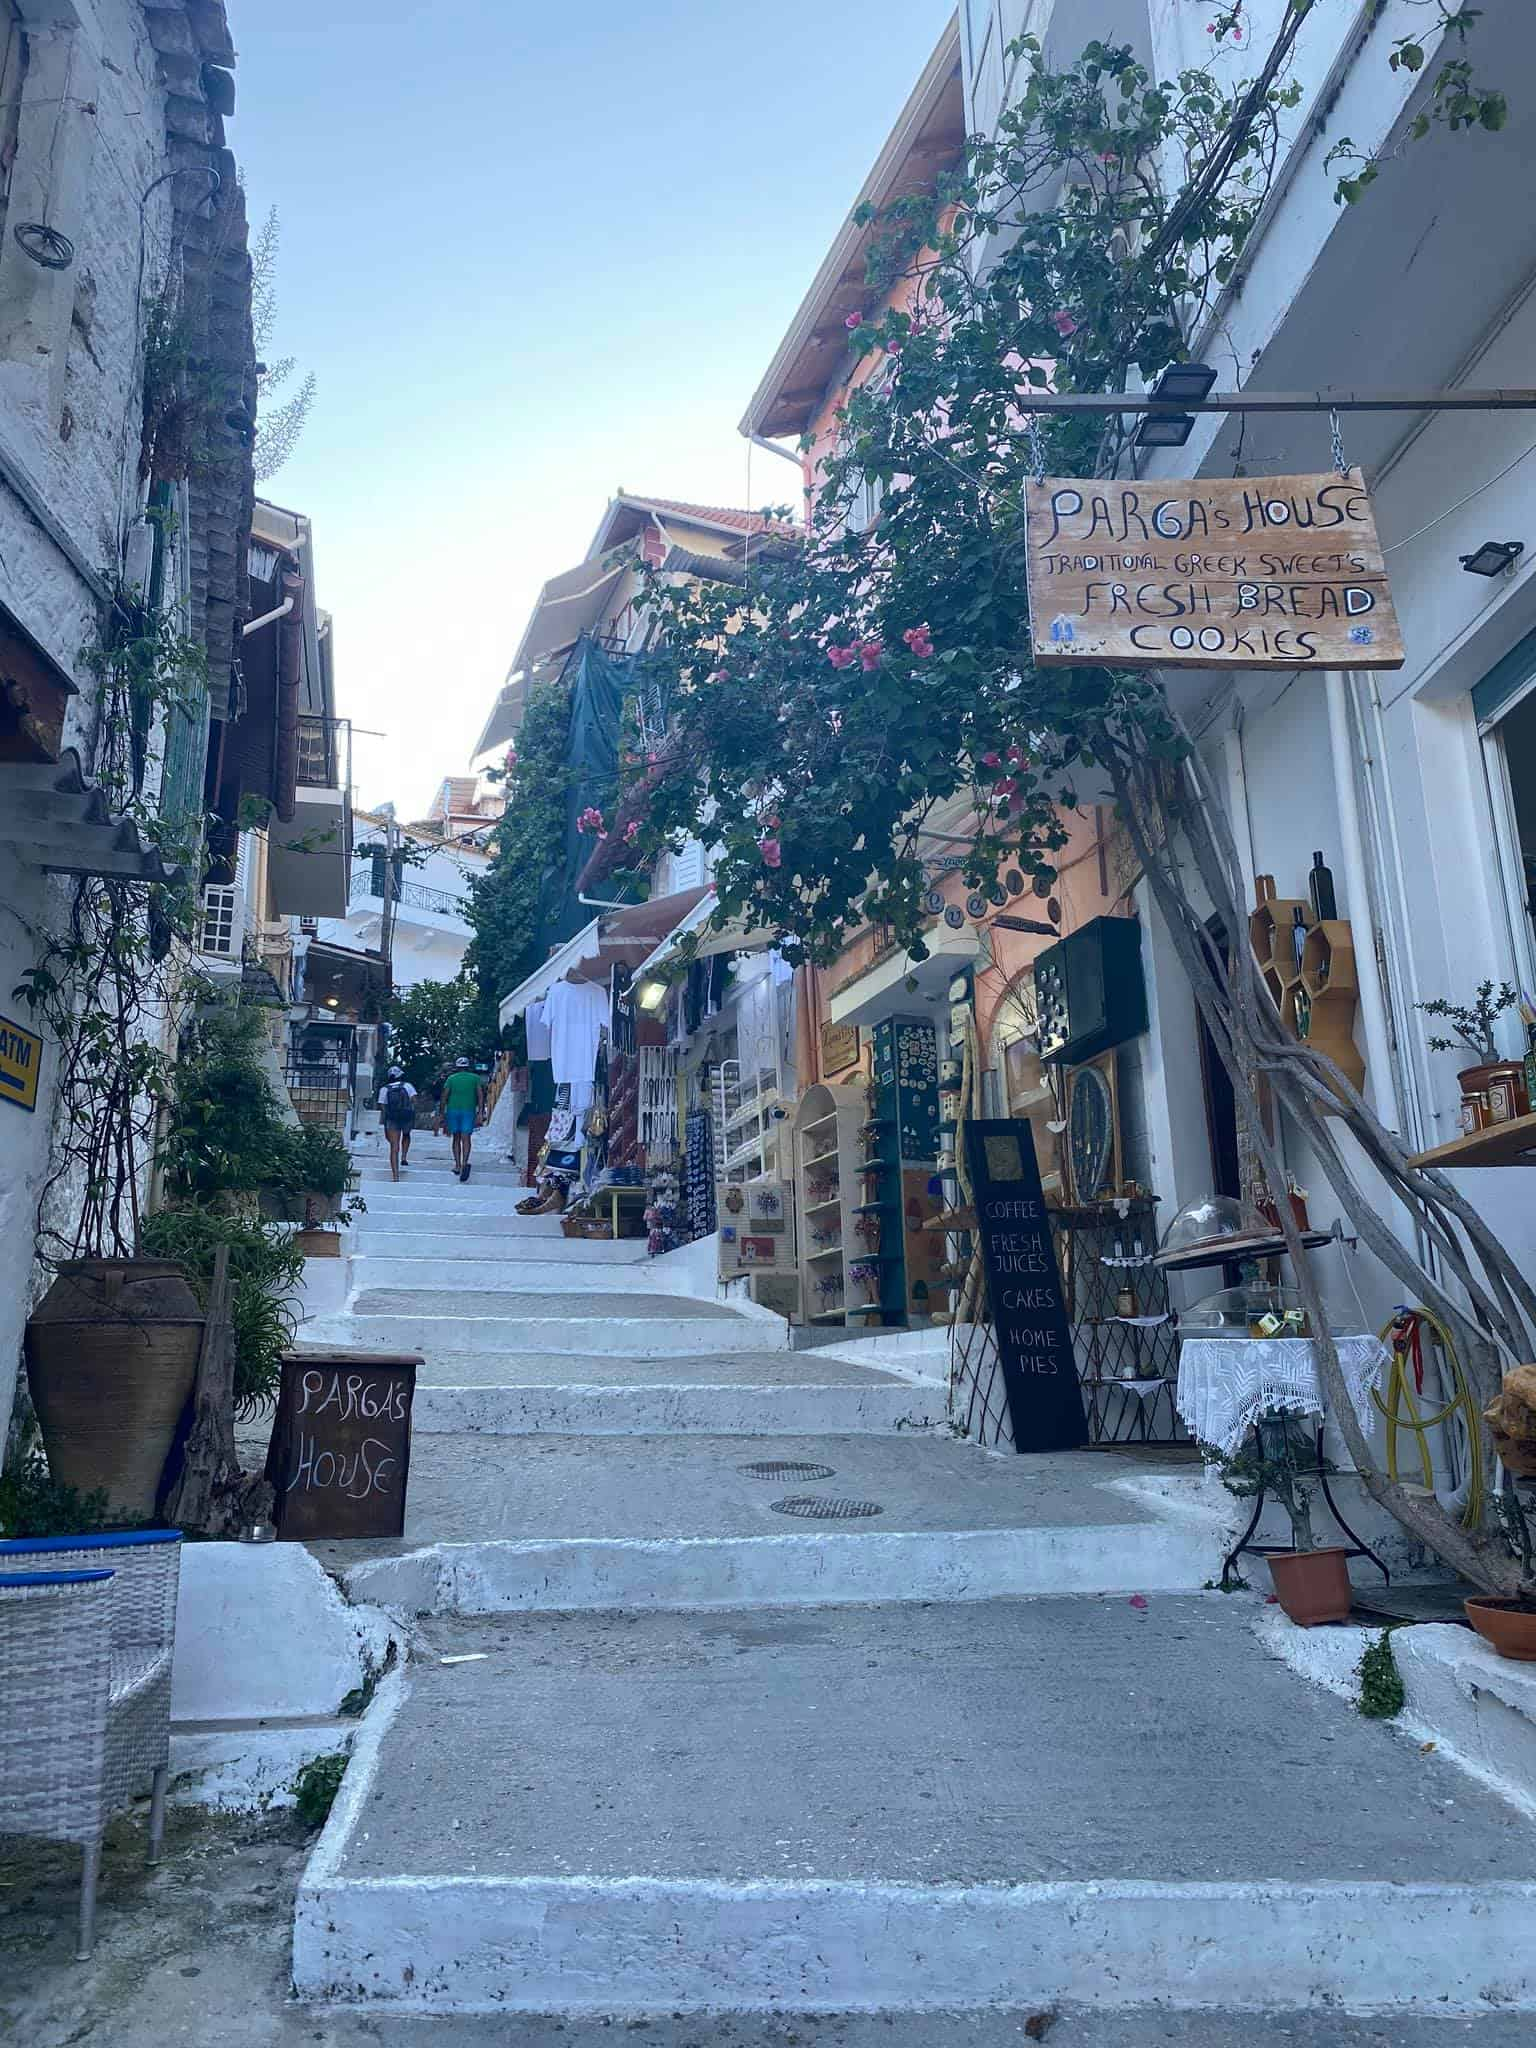 The quaint streets of Old Town Parga, Greece